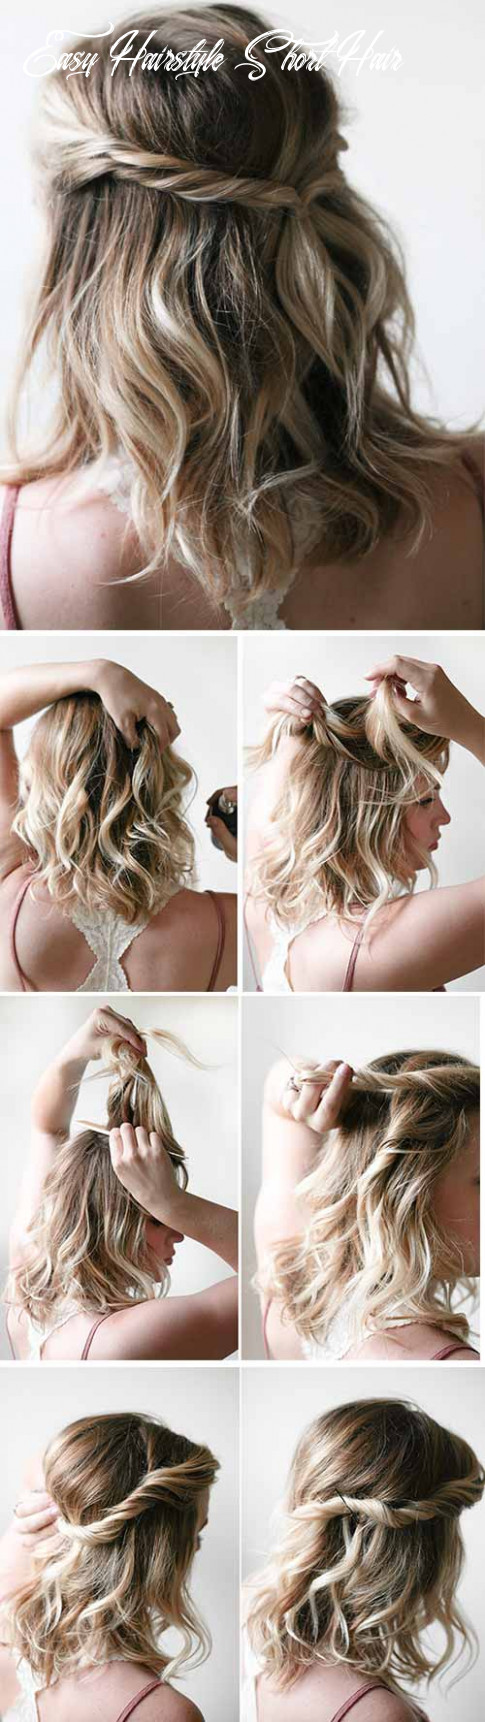 9 incredible diy short hairstyles a step by step guide easy hairstyle short hair